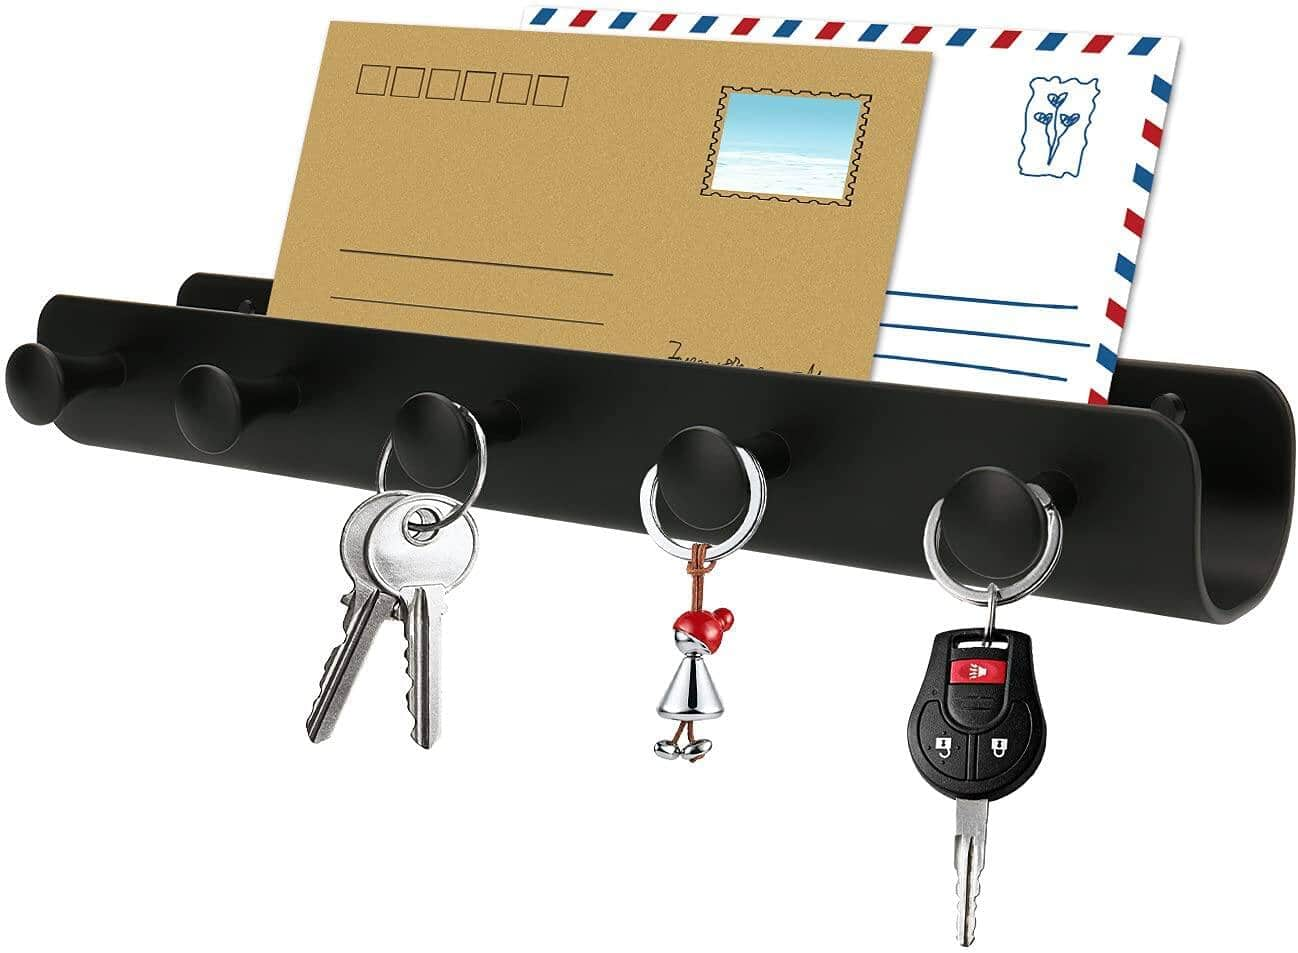 Luxbon Key Holder Mail Organizer for - $6.5 + Free Shipping w/ Amazon Prime or Orders $25+